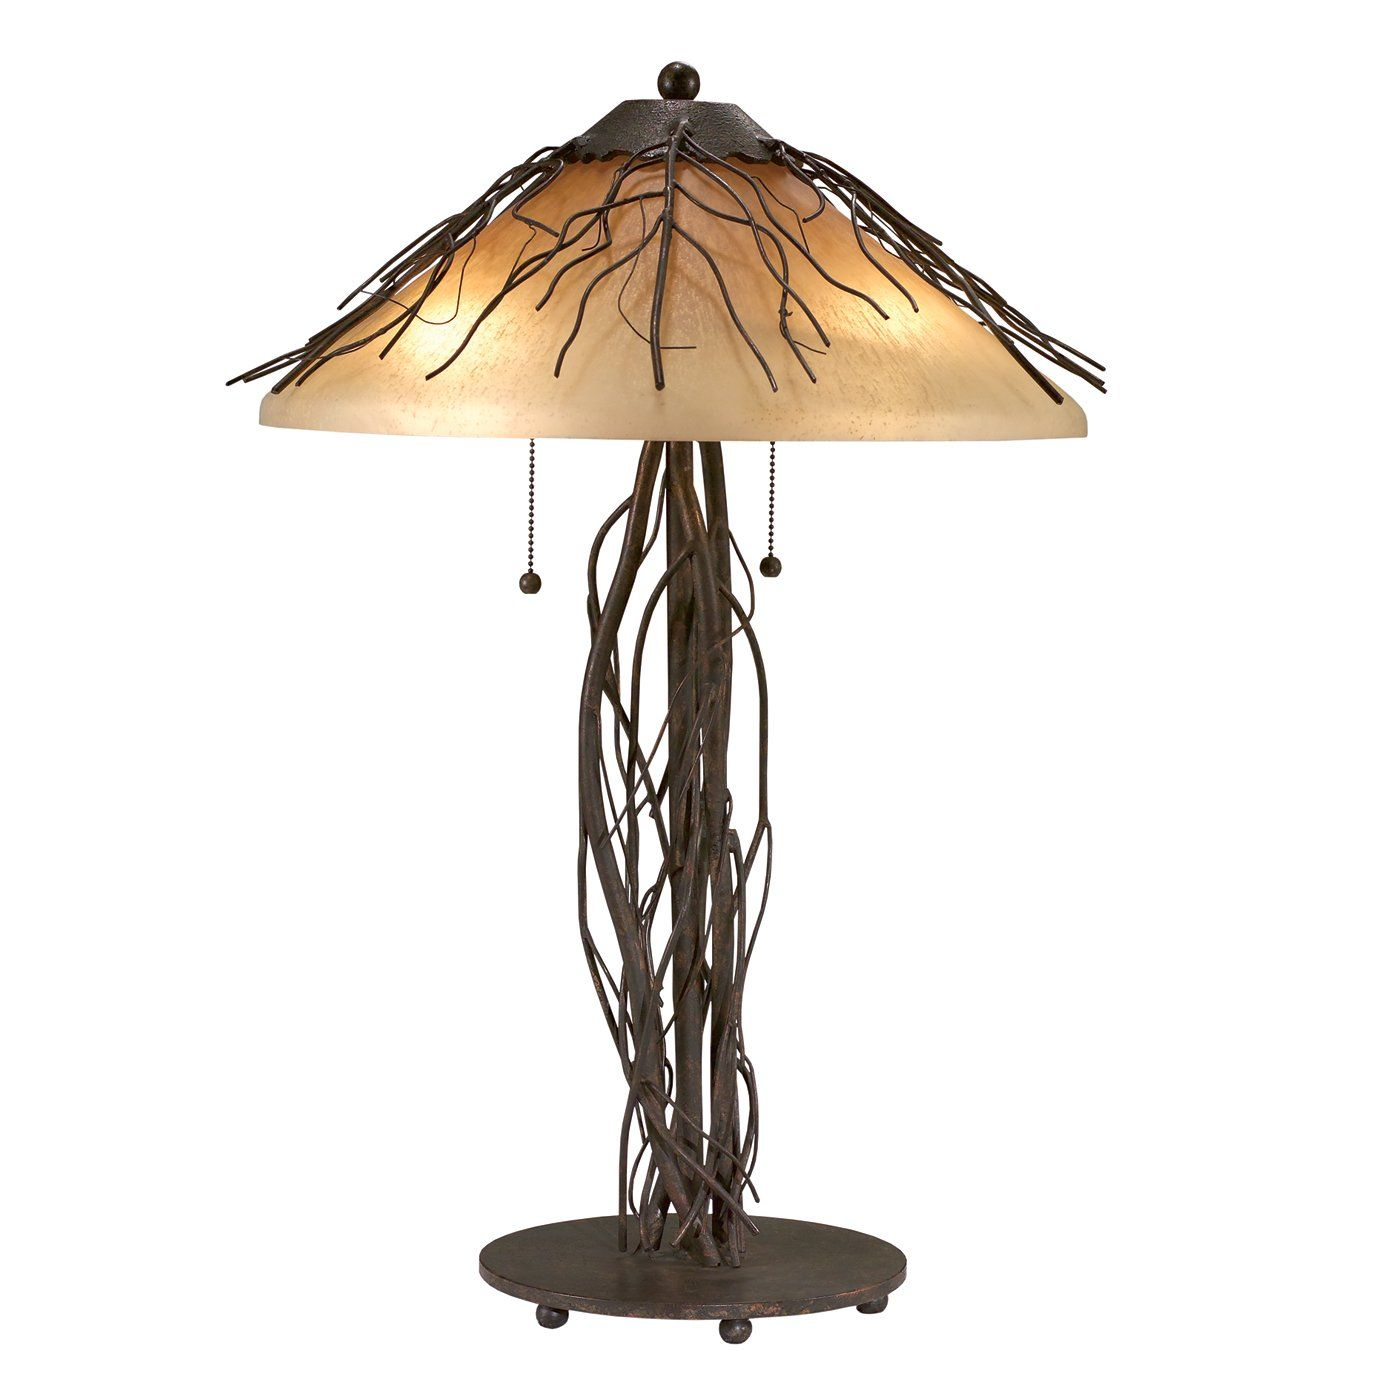 Shadow Mountain Sm1211 Tl Vi 3 Light Table Lamp Rustic Table Lamps Unique Table Lamps Western Lamps